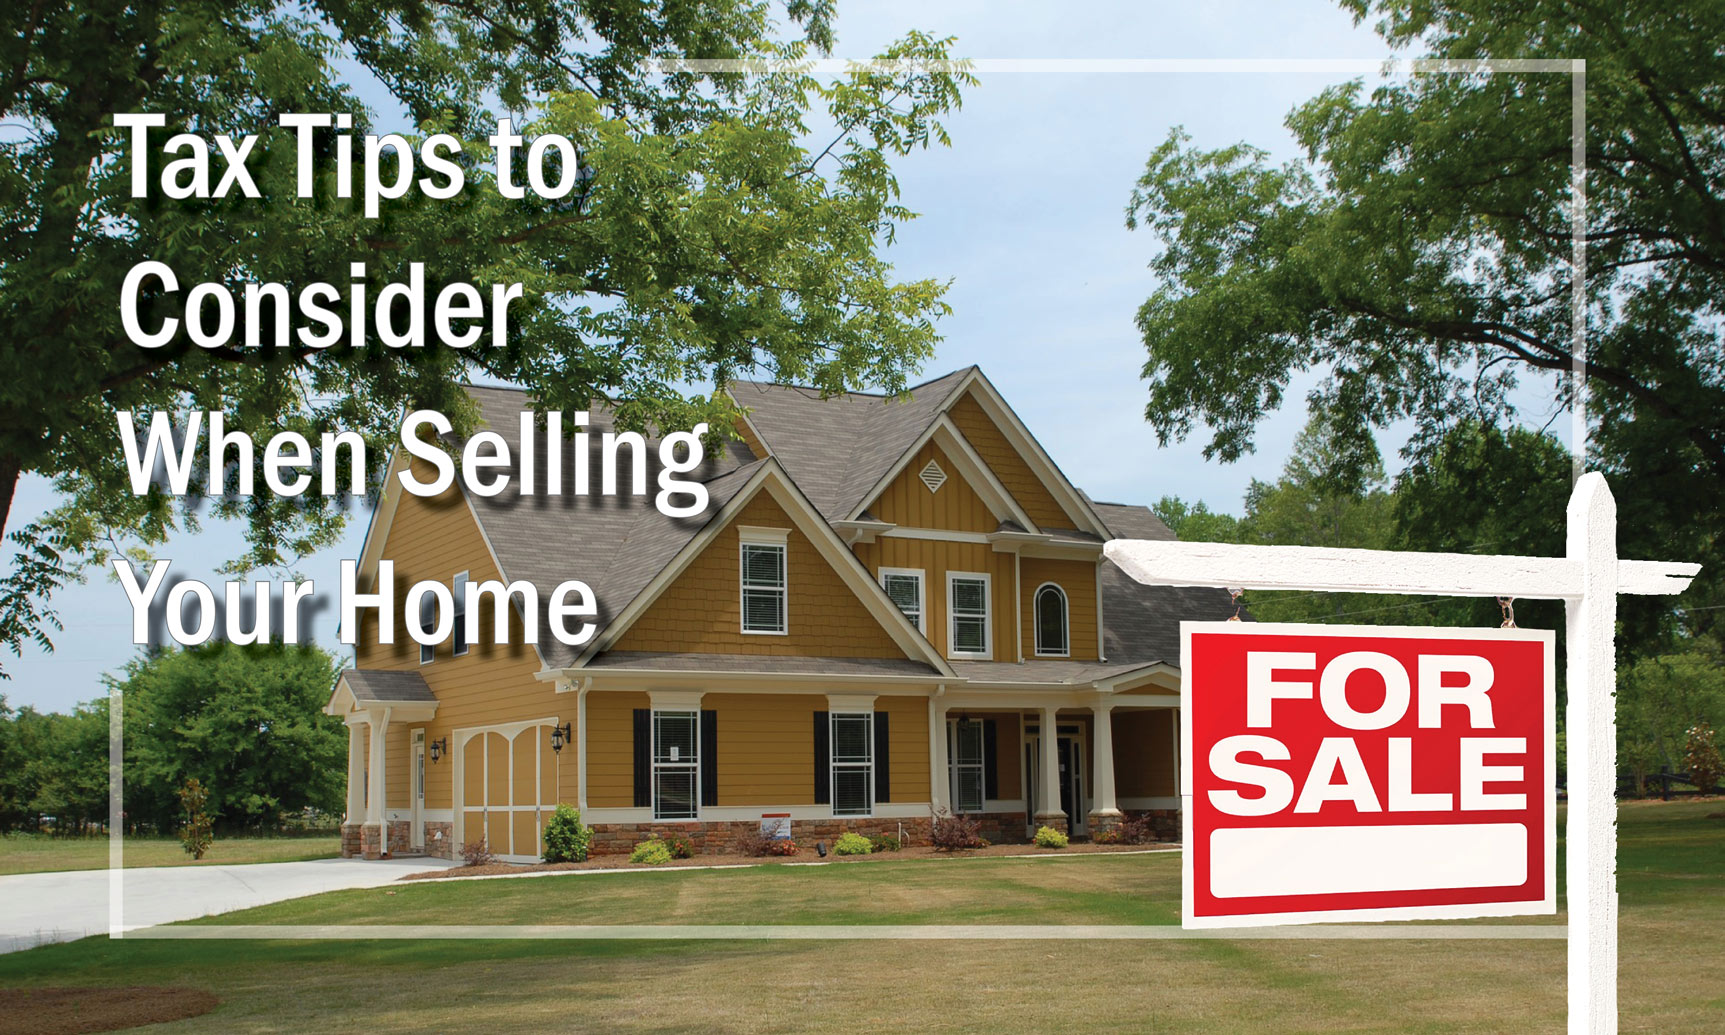 Tax Tips to Consider When Selling Your Home